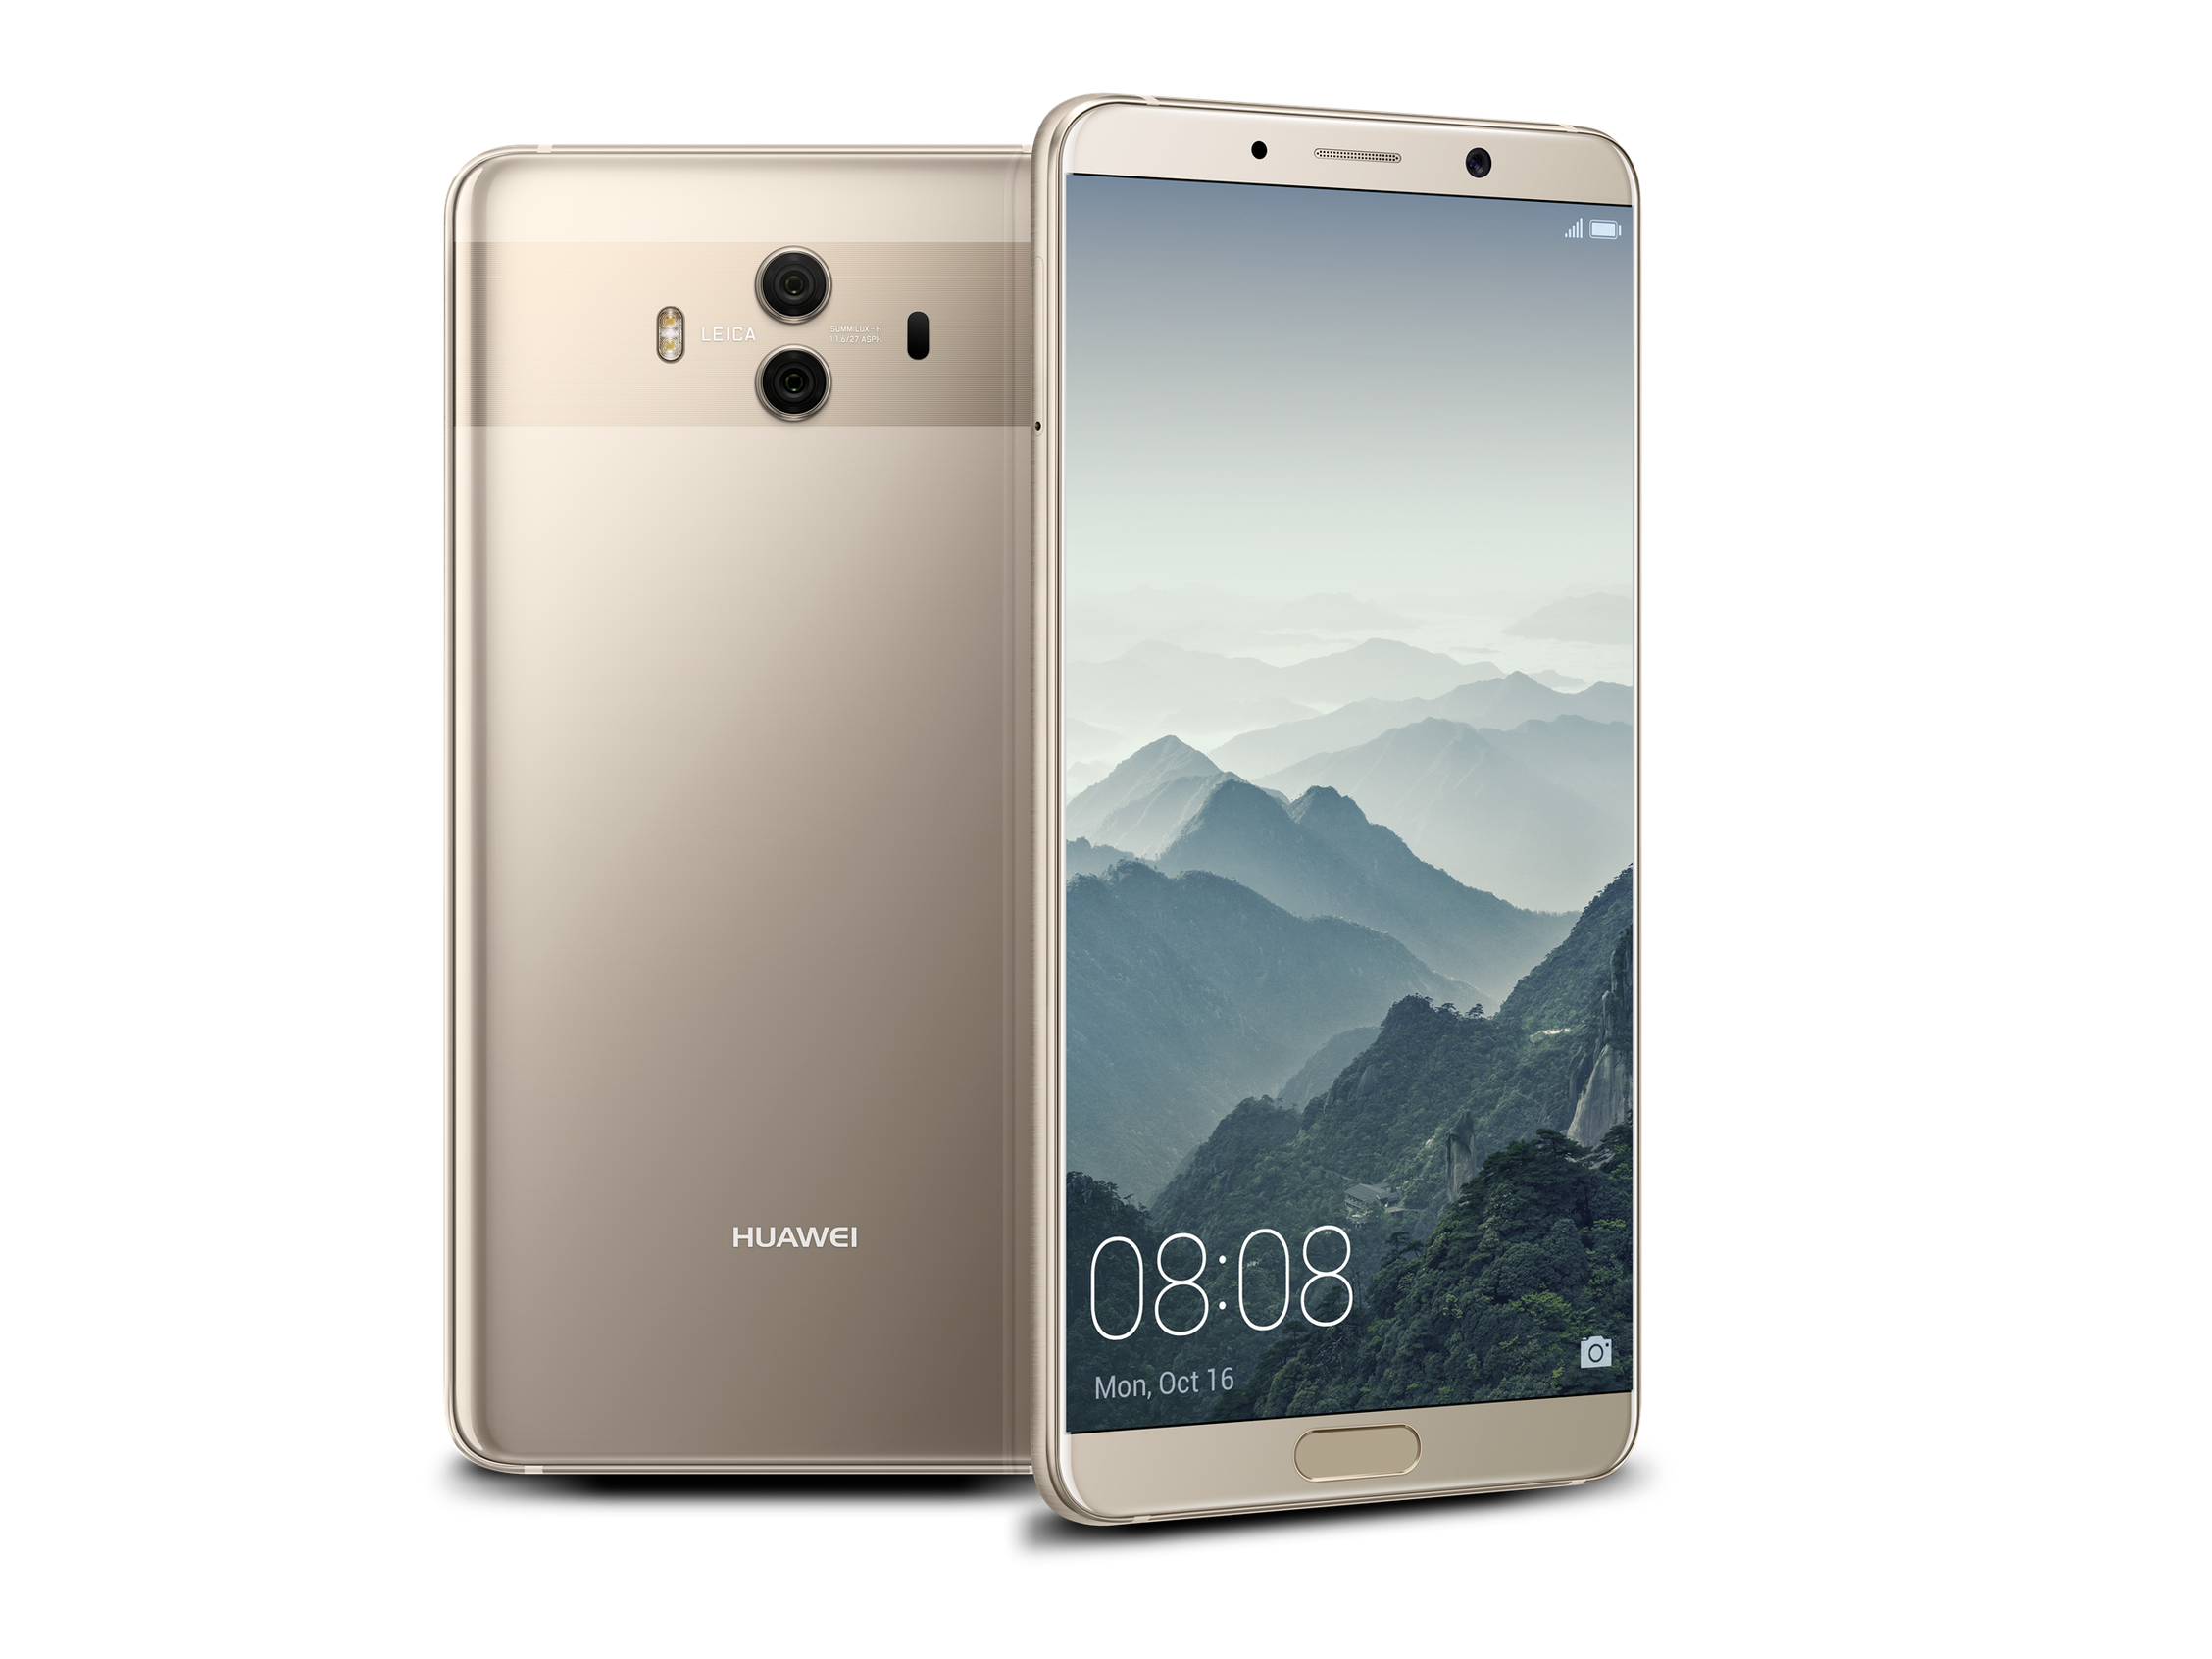 AT&T won't sell the Huawei Mate 10 in the US over political